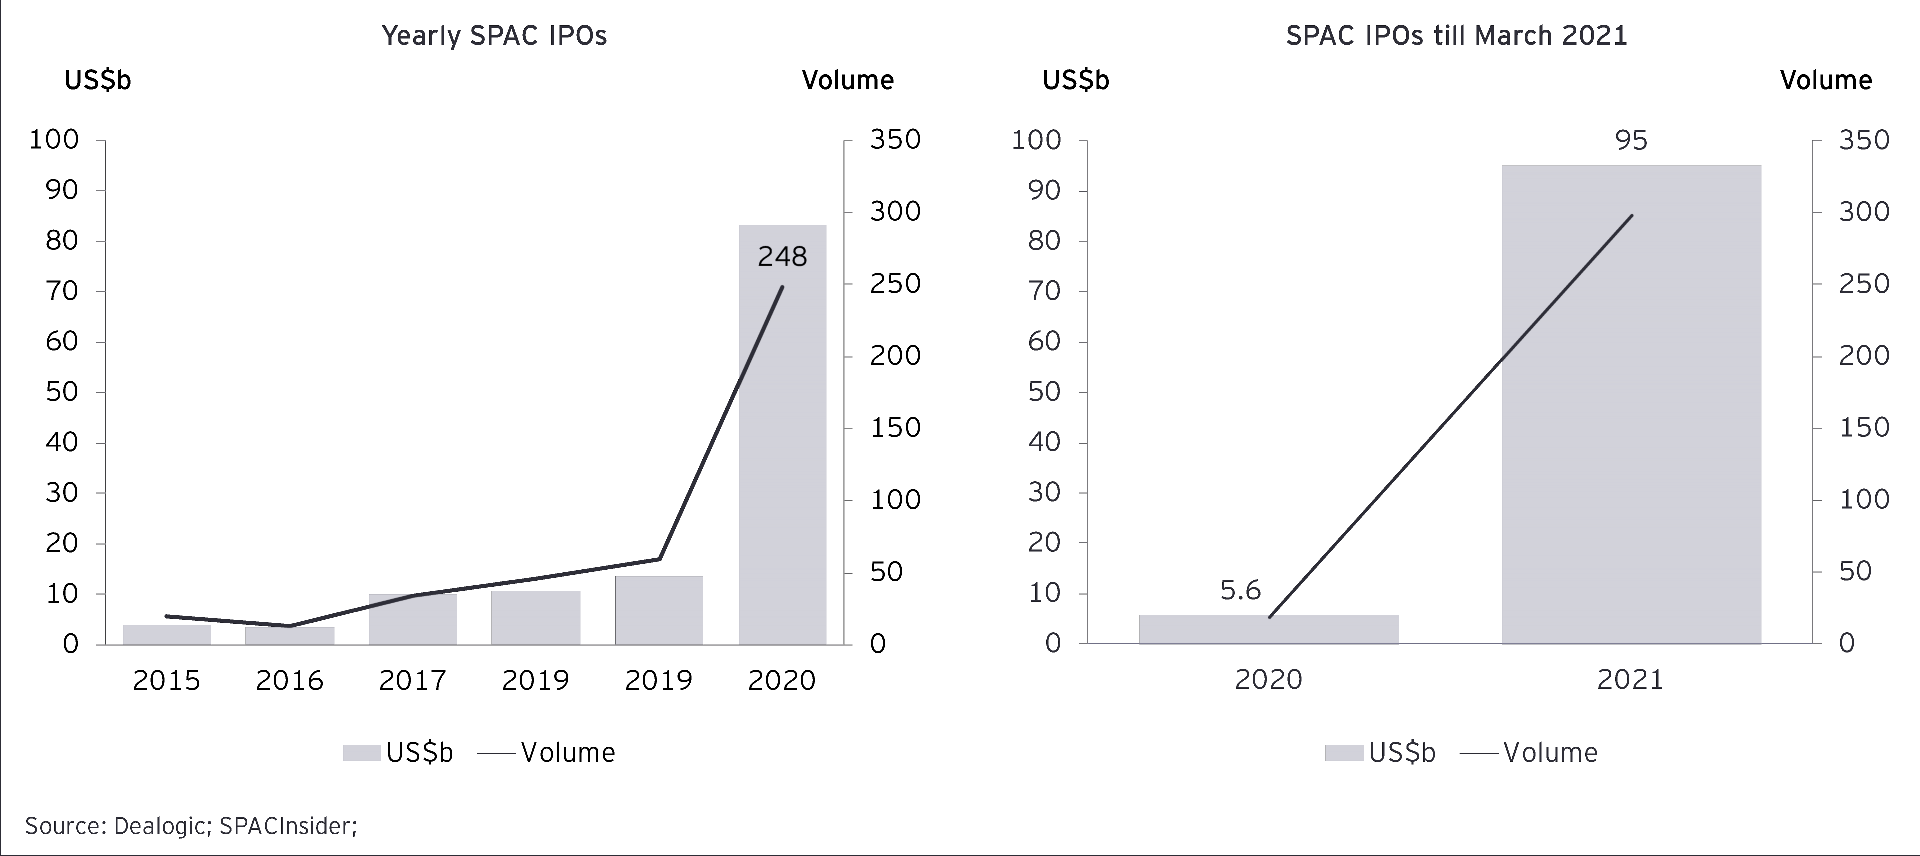 Yearly SPAC IPOs